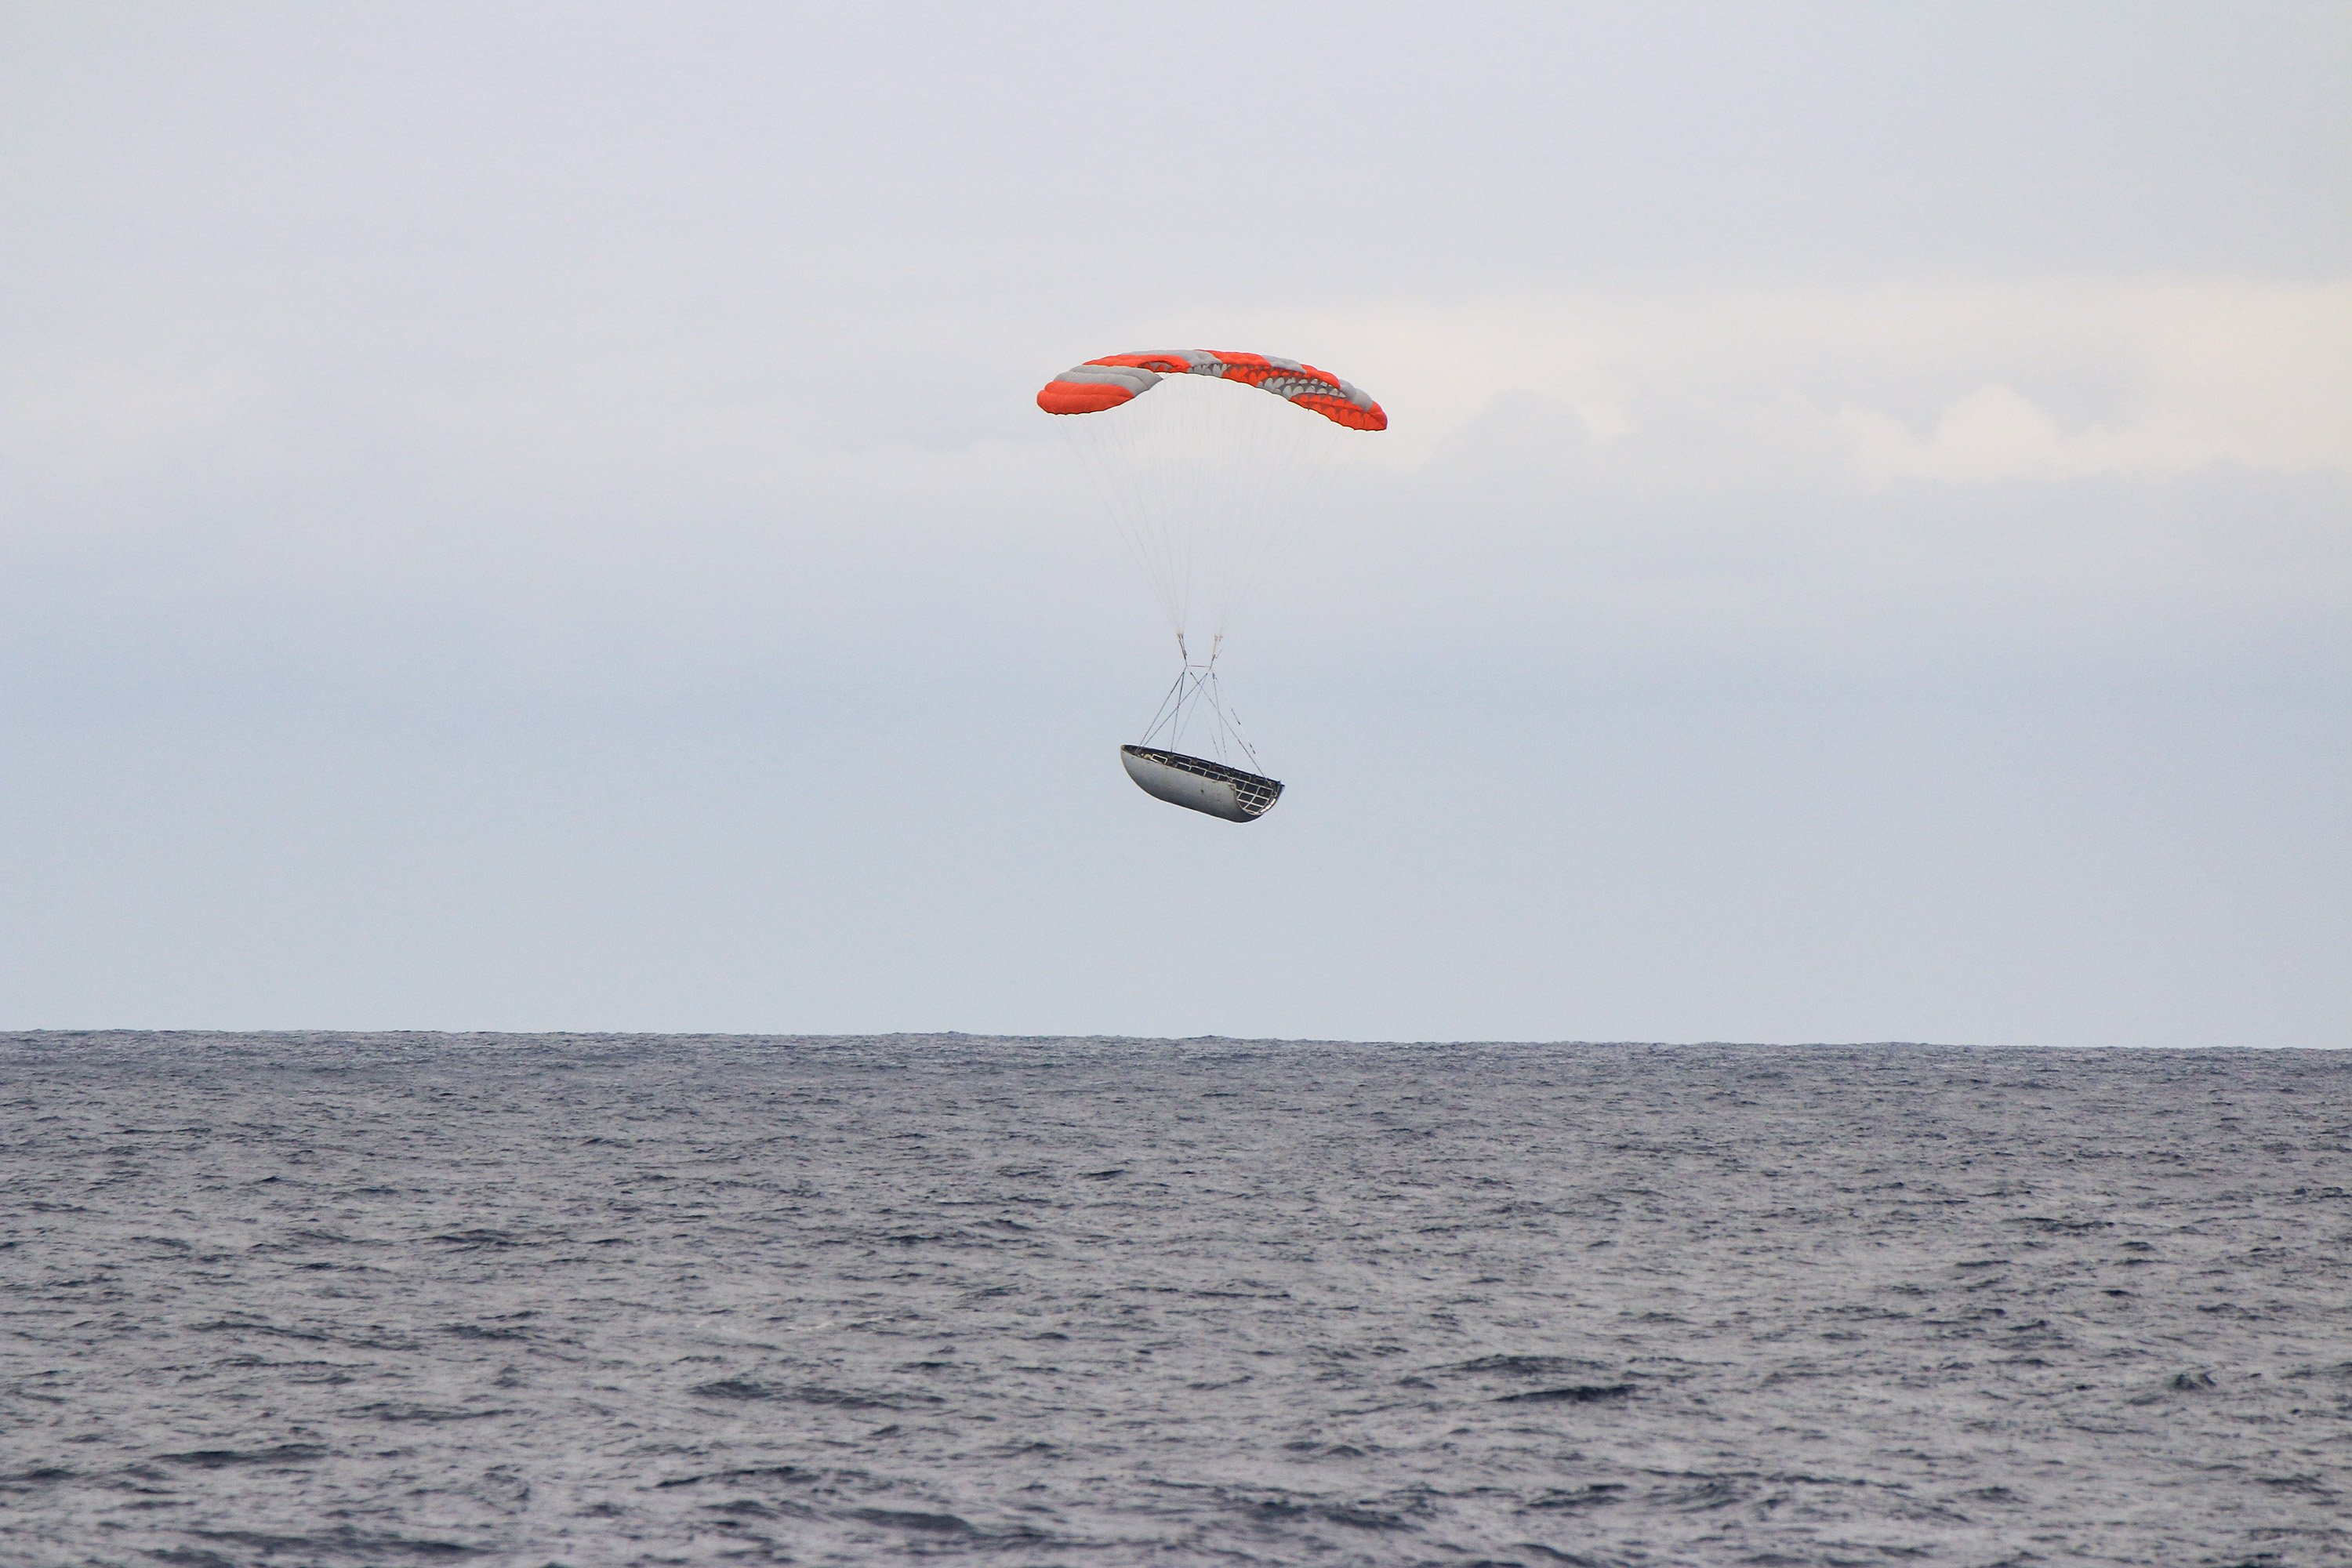 Falcon fairing recovery (SpaceX) 1